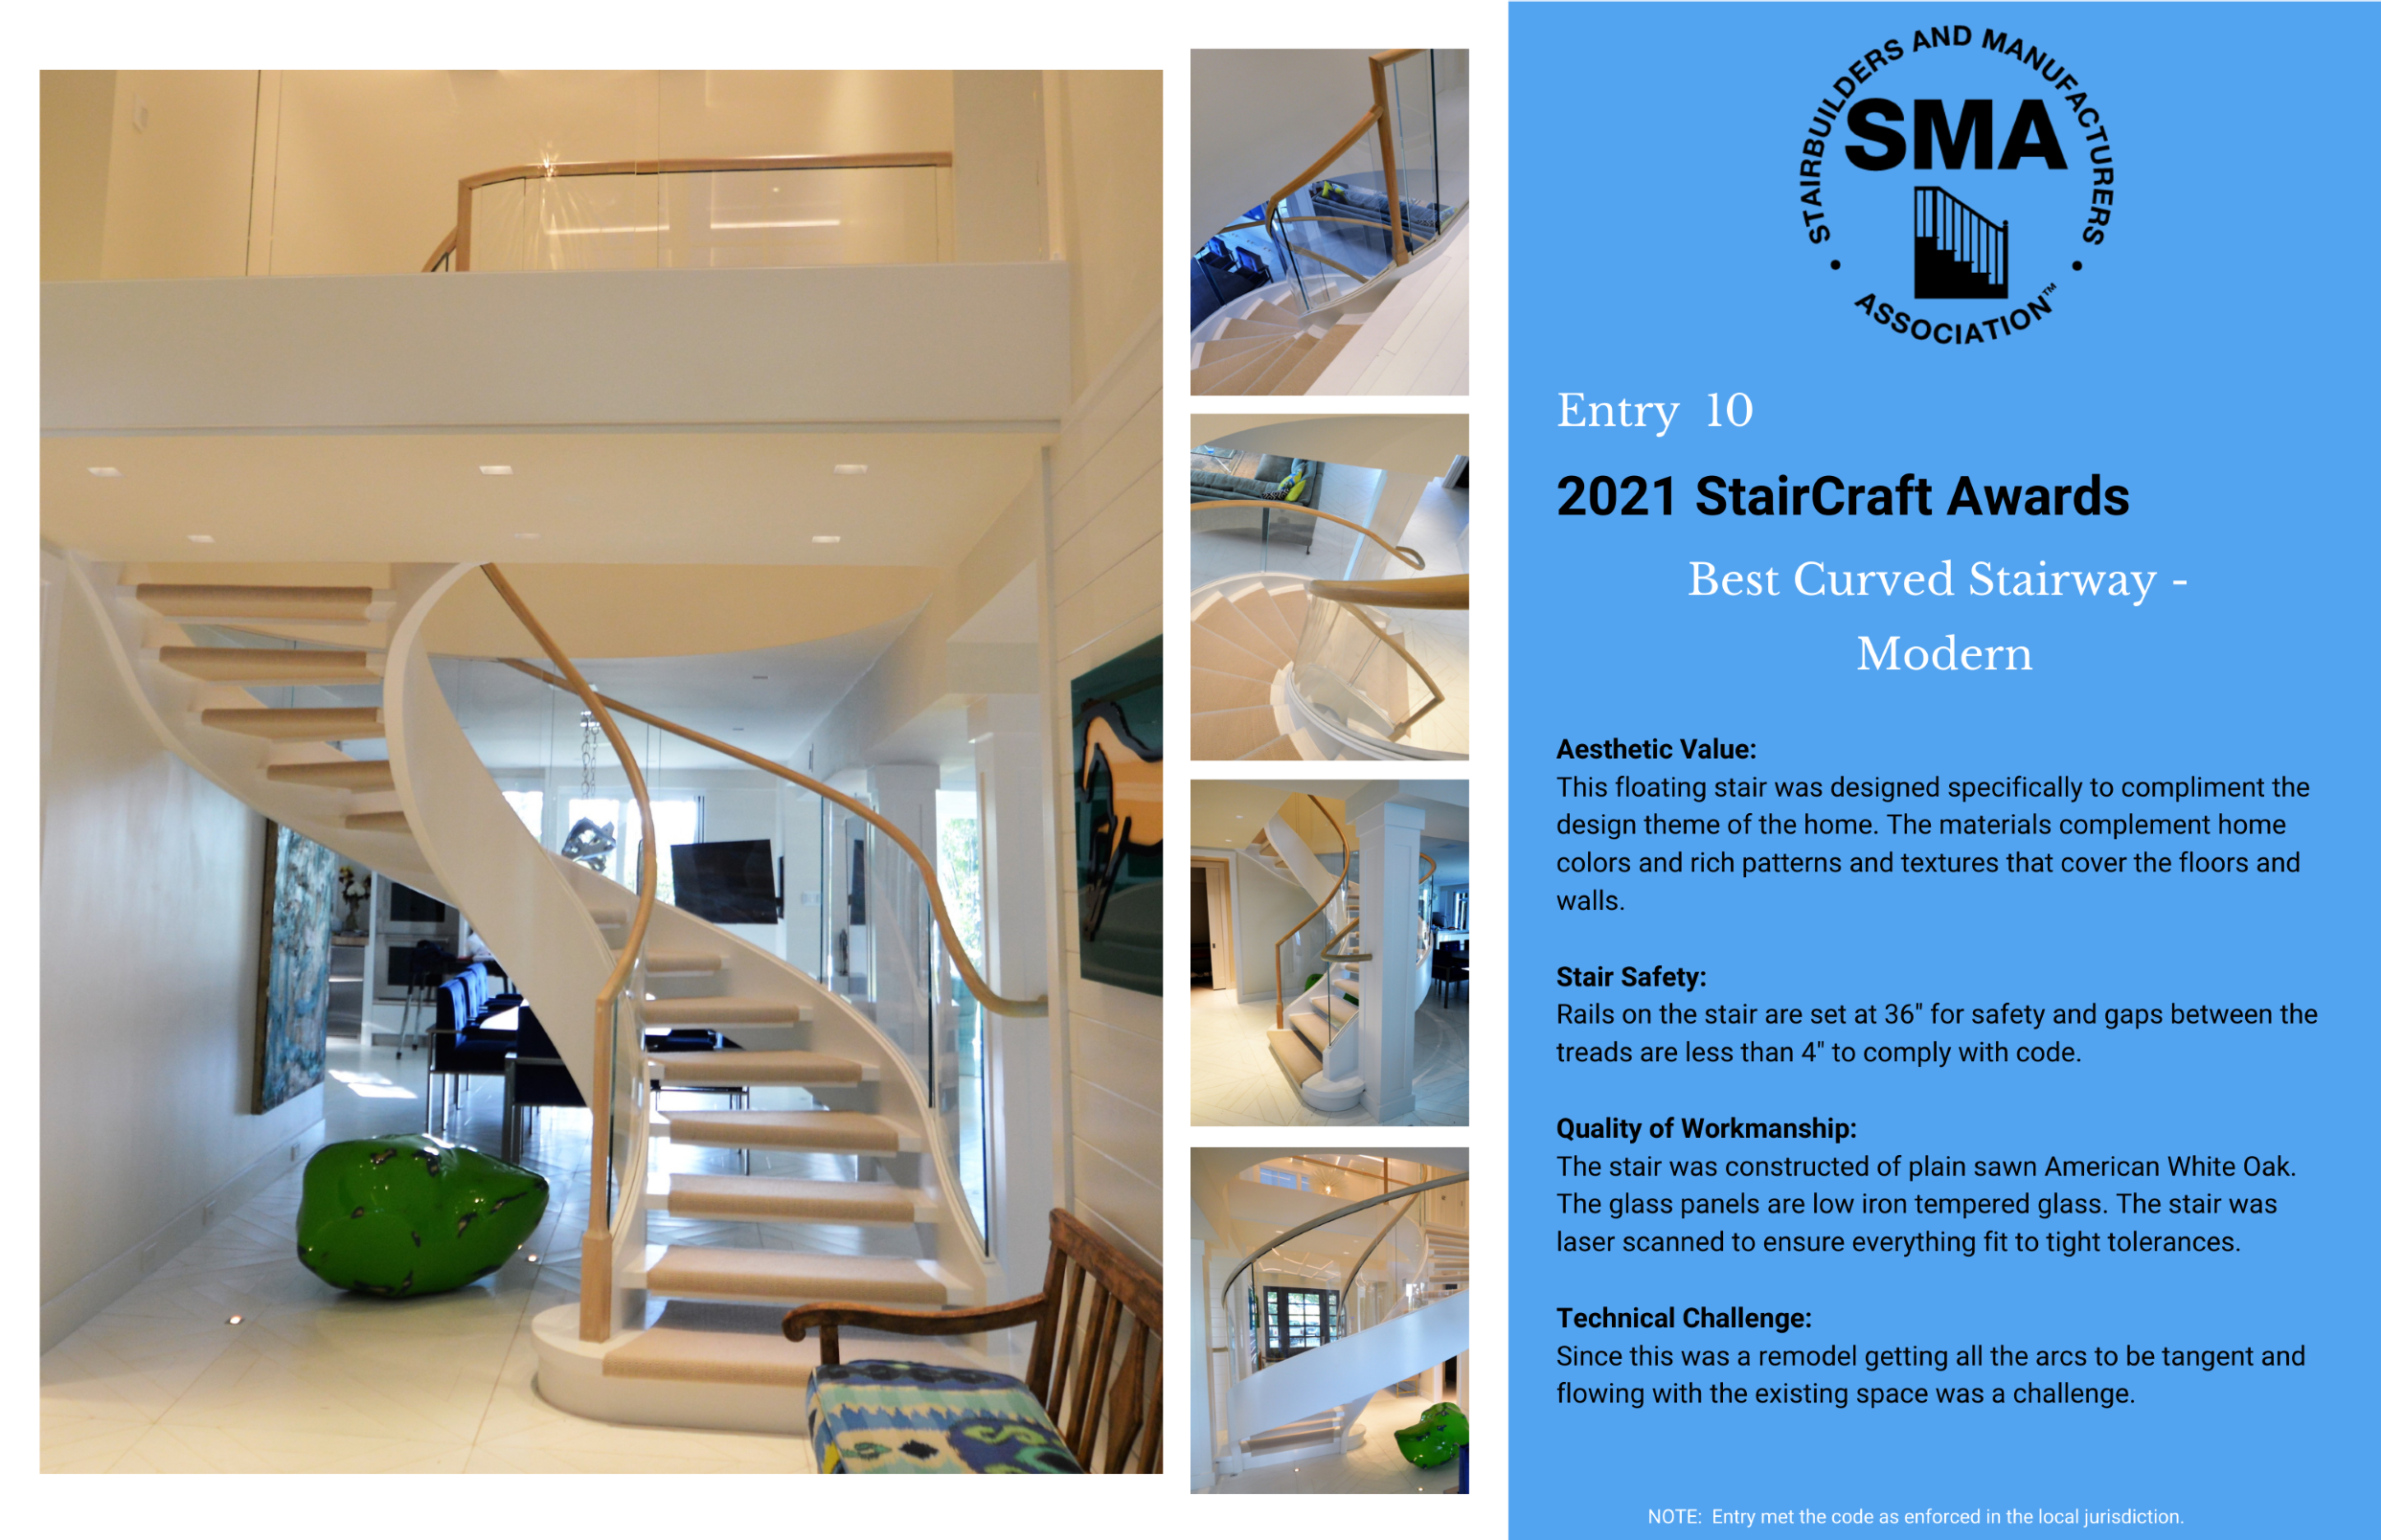 2021 StairCraft Awards Entry 10